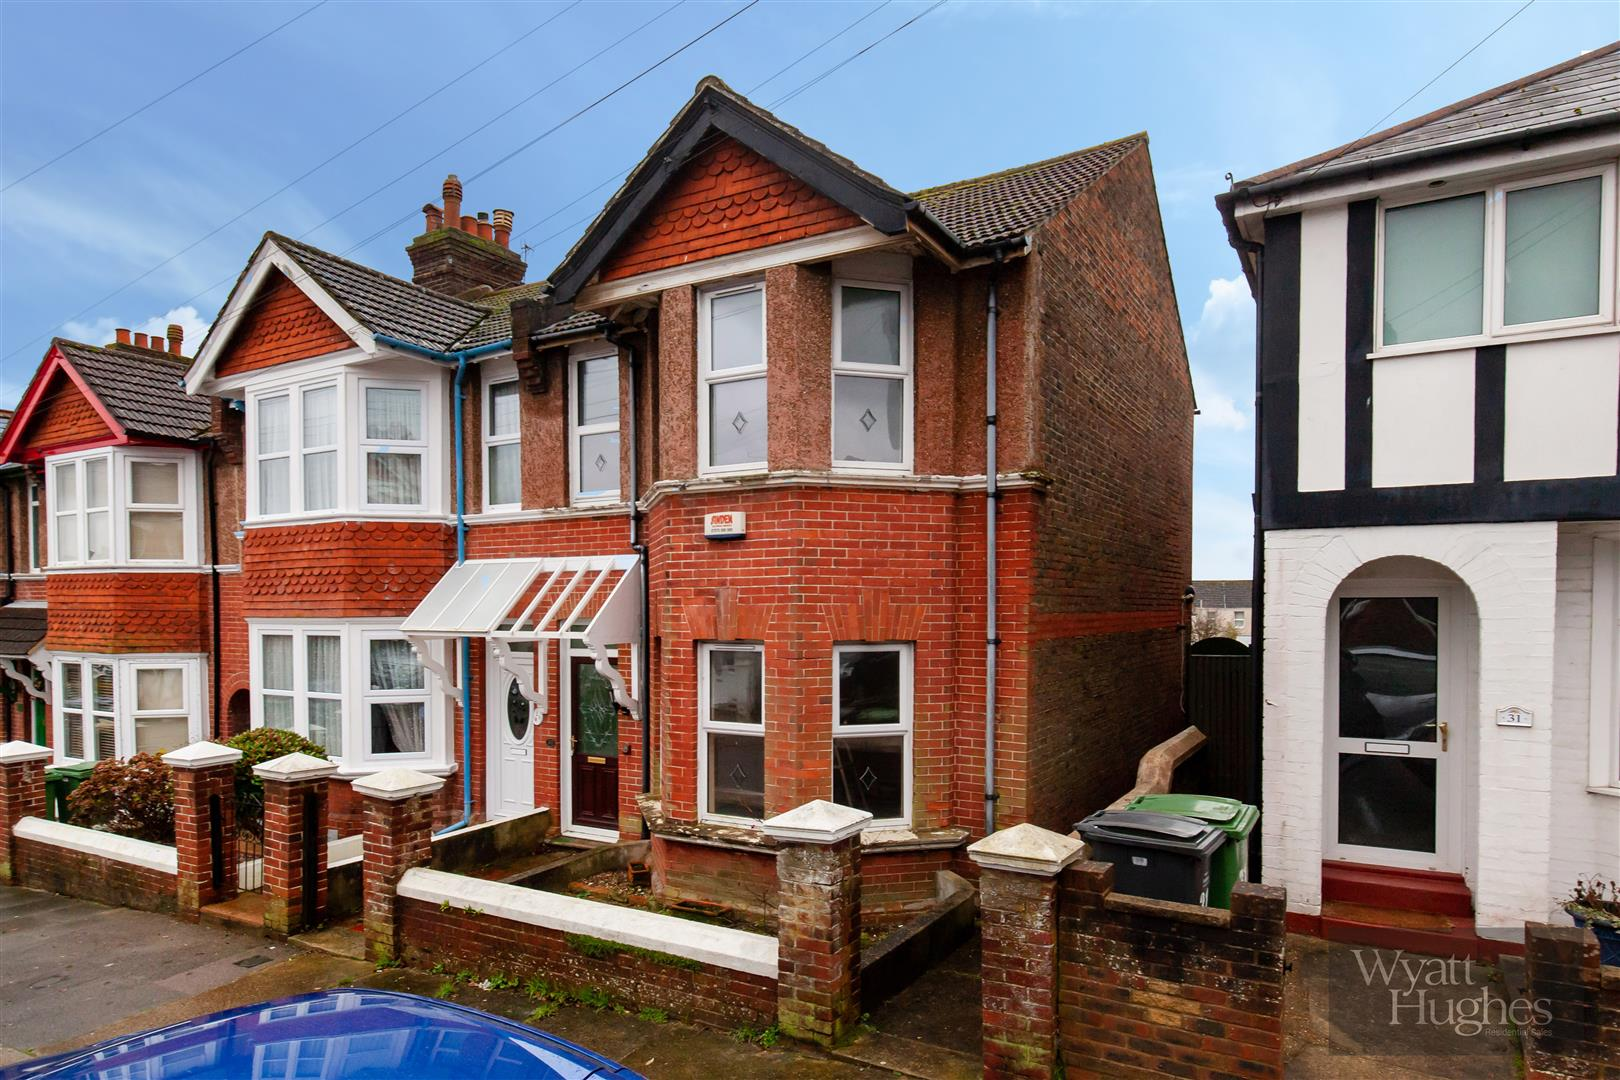 3 bed end-of-terrace-house for sale in Burry Road, St. Leonards-On-Sea 23